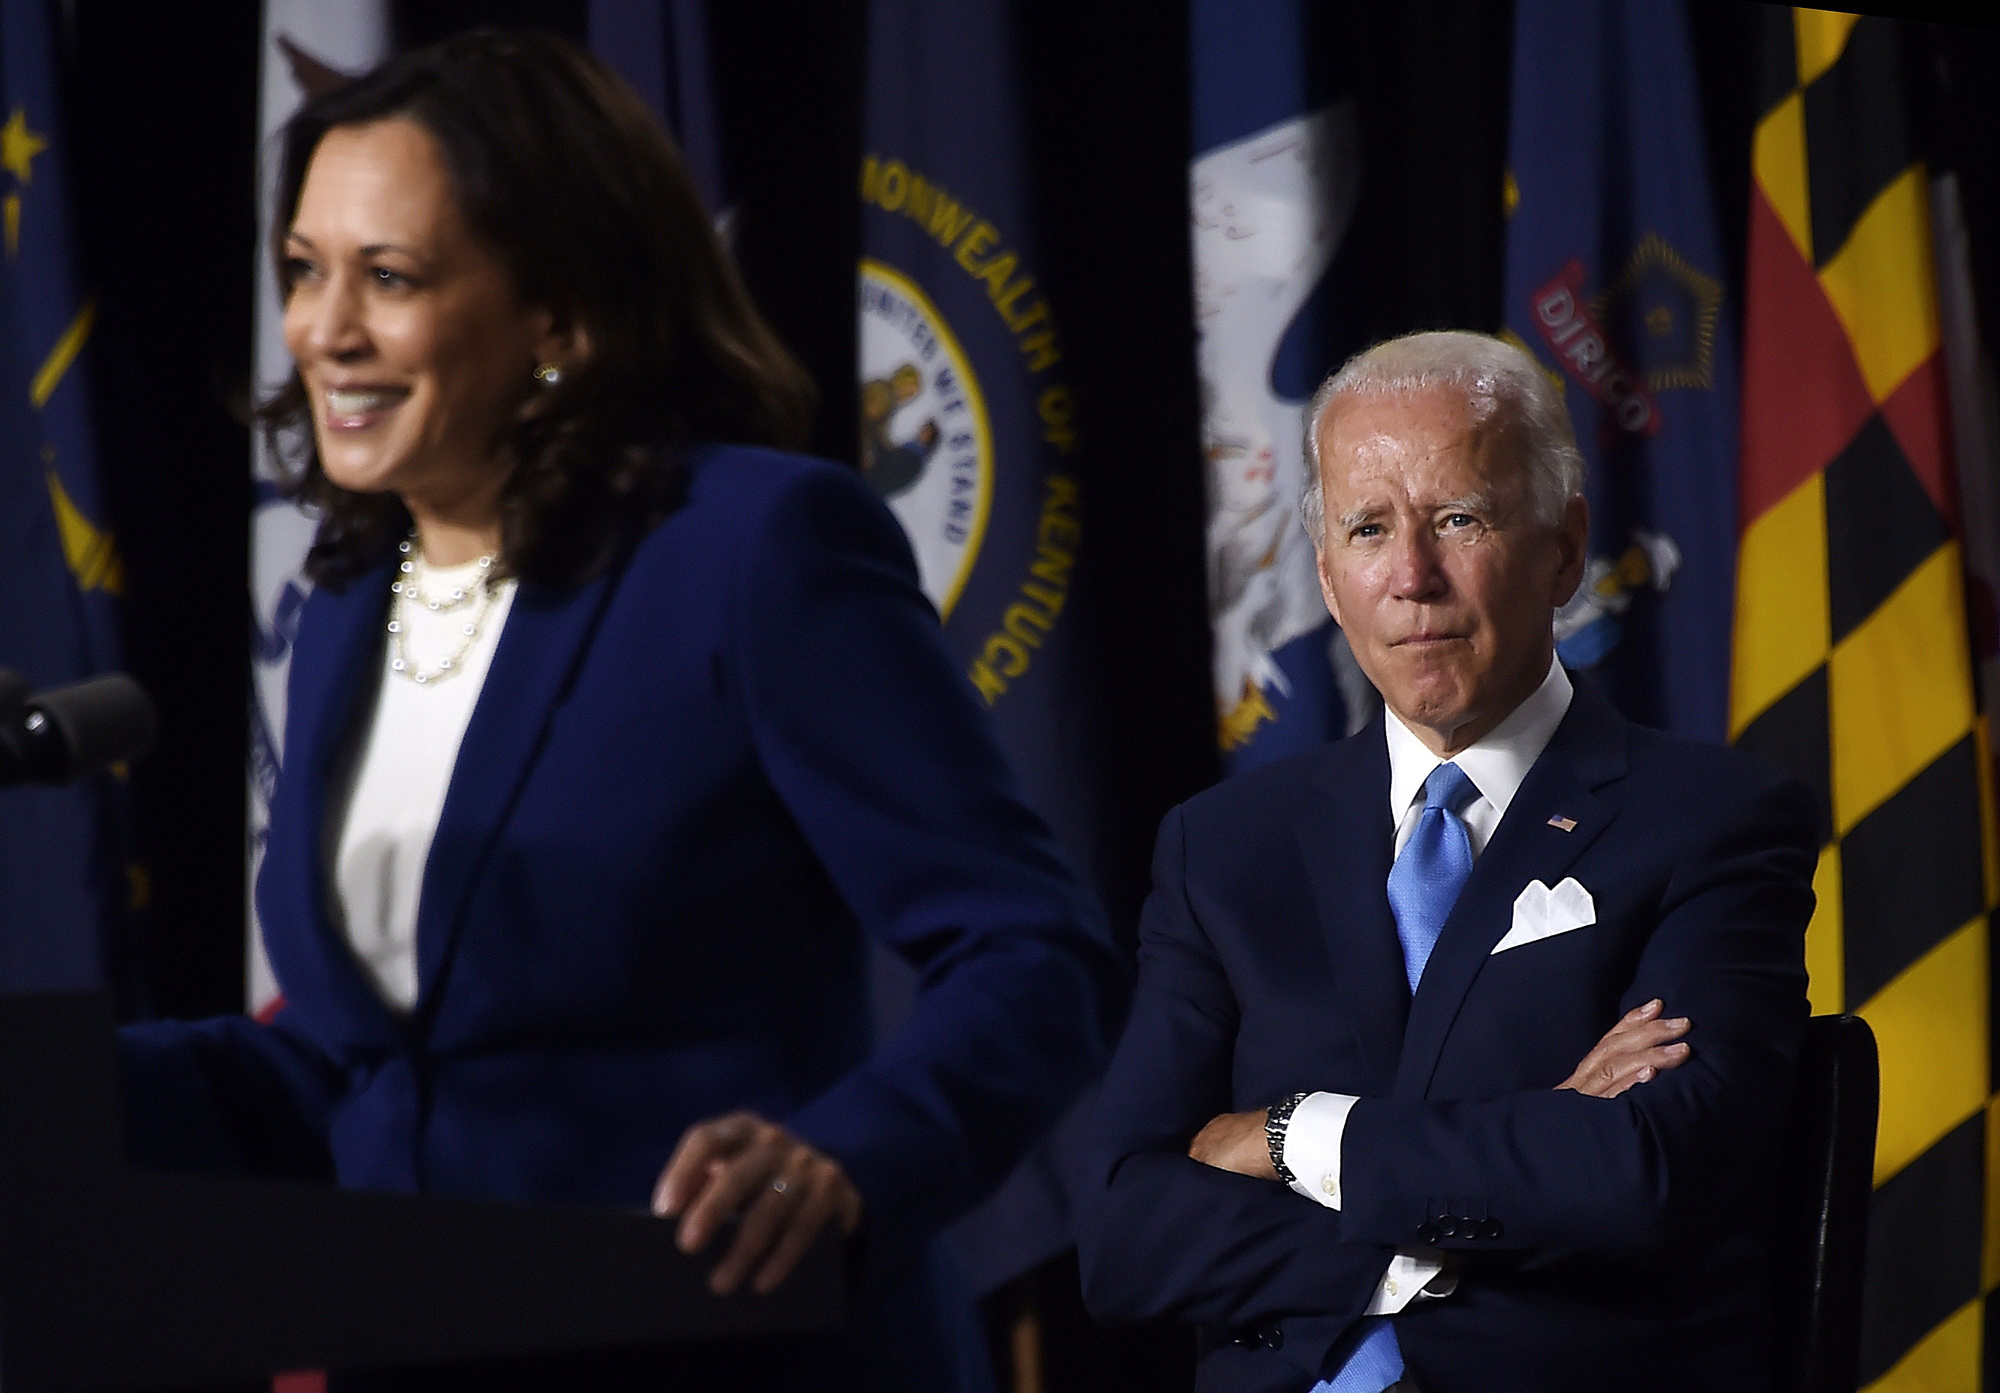 In August, Joe Biden, right, chose Sen. Kamala Harris, left, as his running mate in the 2020 election. (Olivier Douliery/AFP/Getty Images)